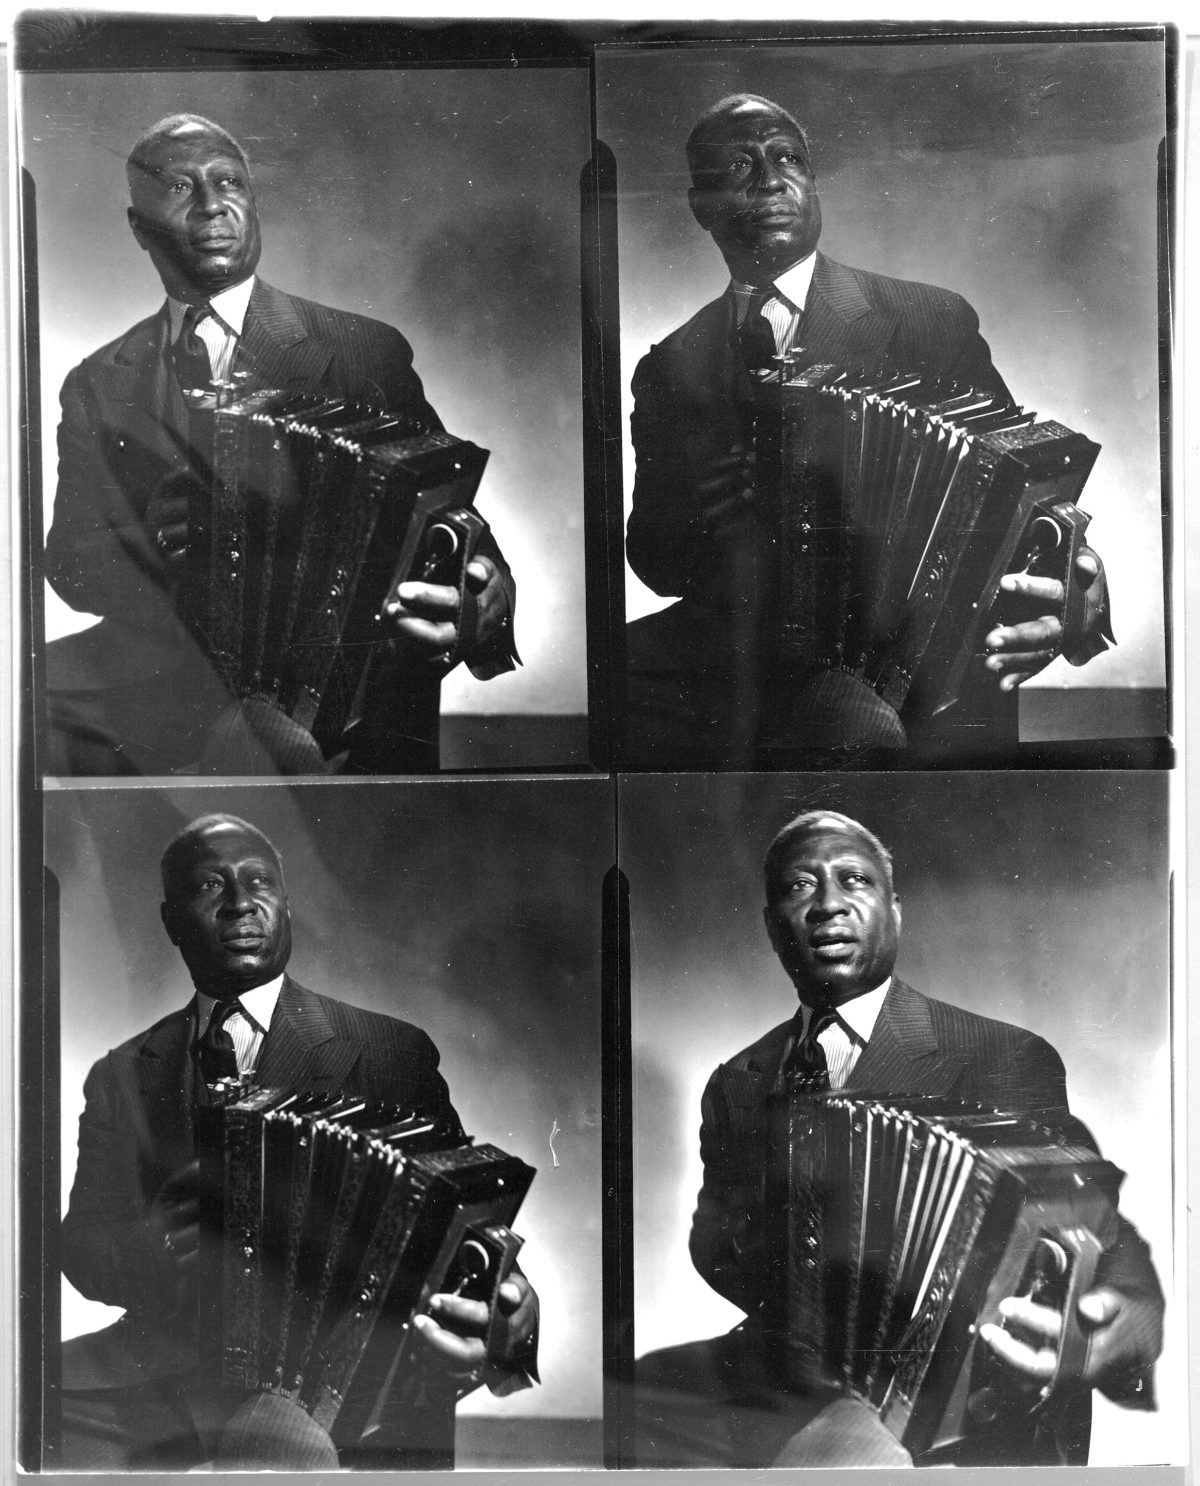 Contact sheet with 4 frames of Leadbelly posing with an accordion